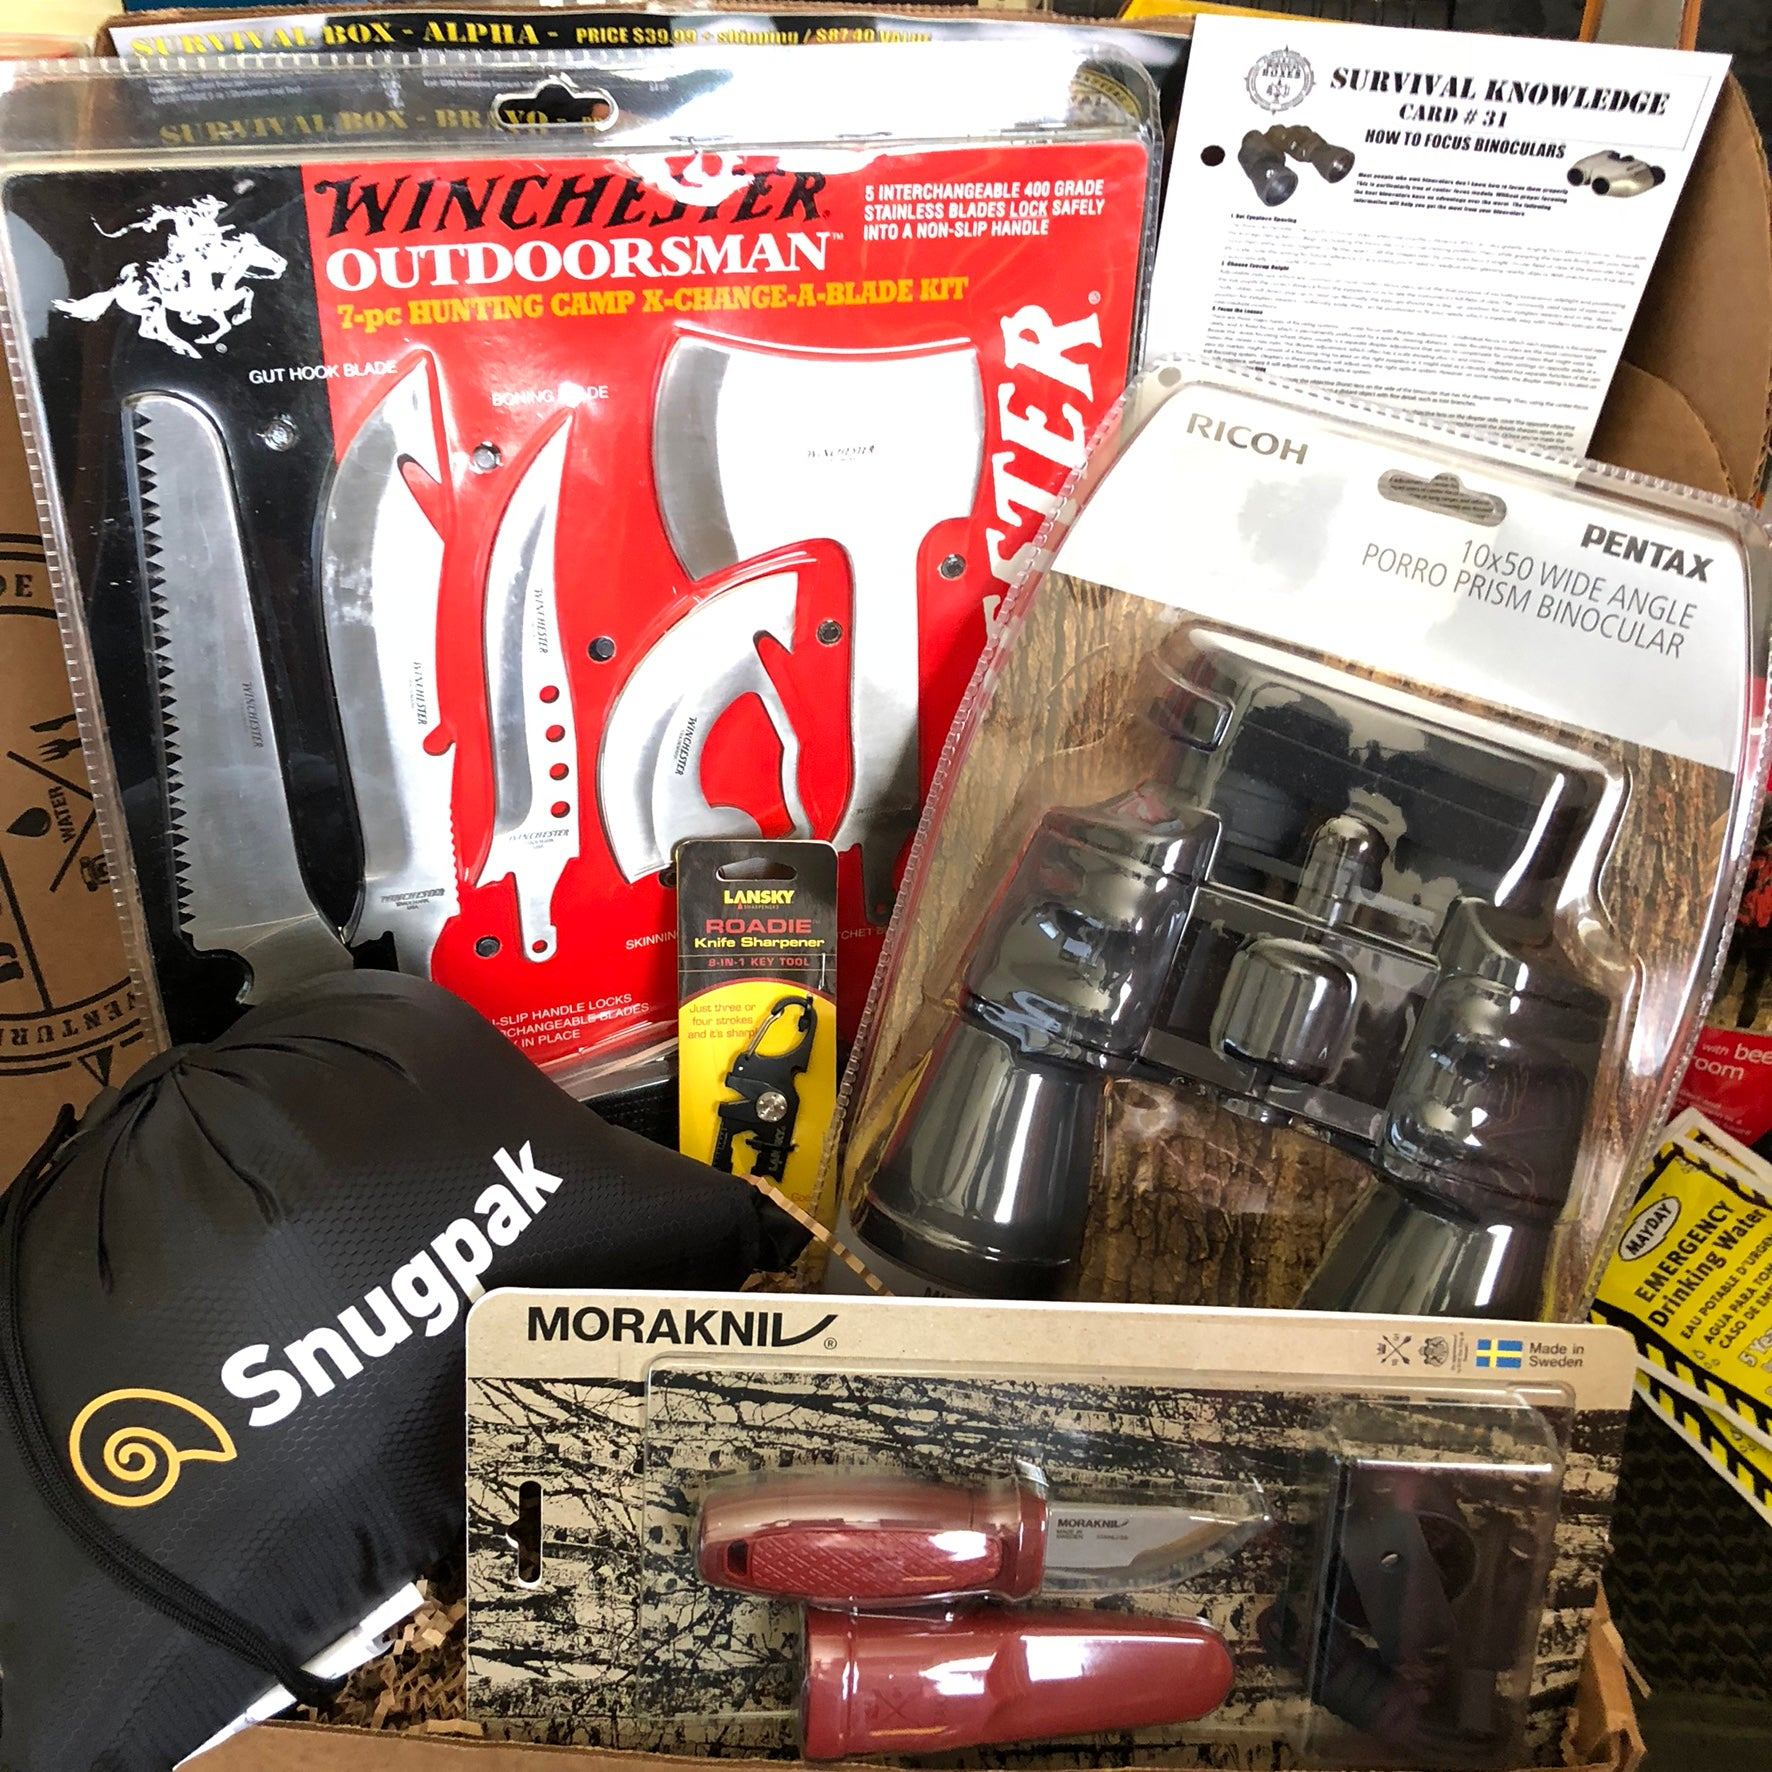 AUG 2018 SURVIVAL BOX GEAR ONLY XL - BINOCULARS & GEAR FOR PACKS AND GO BAGS